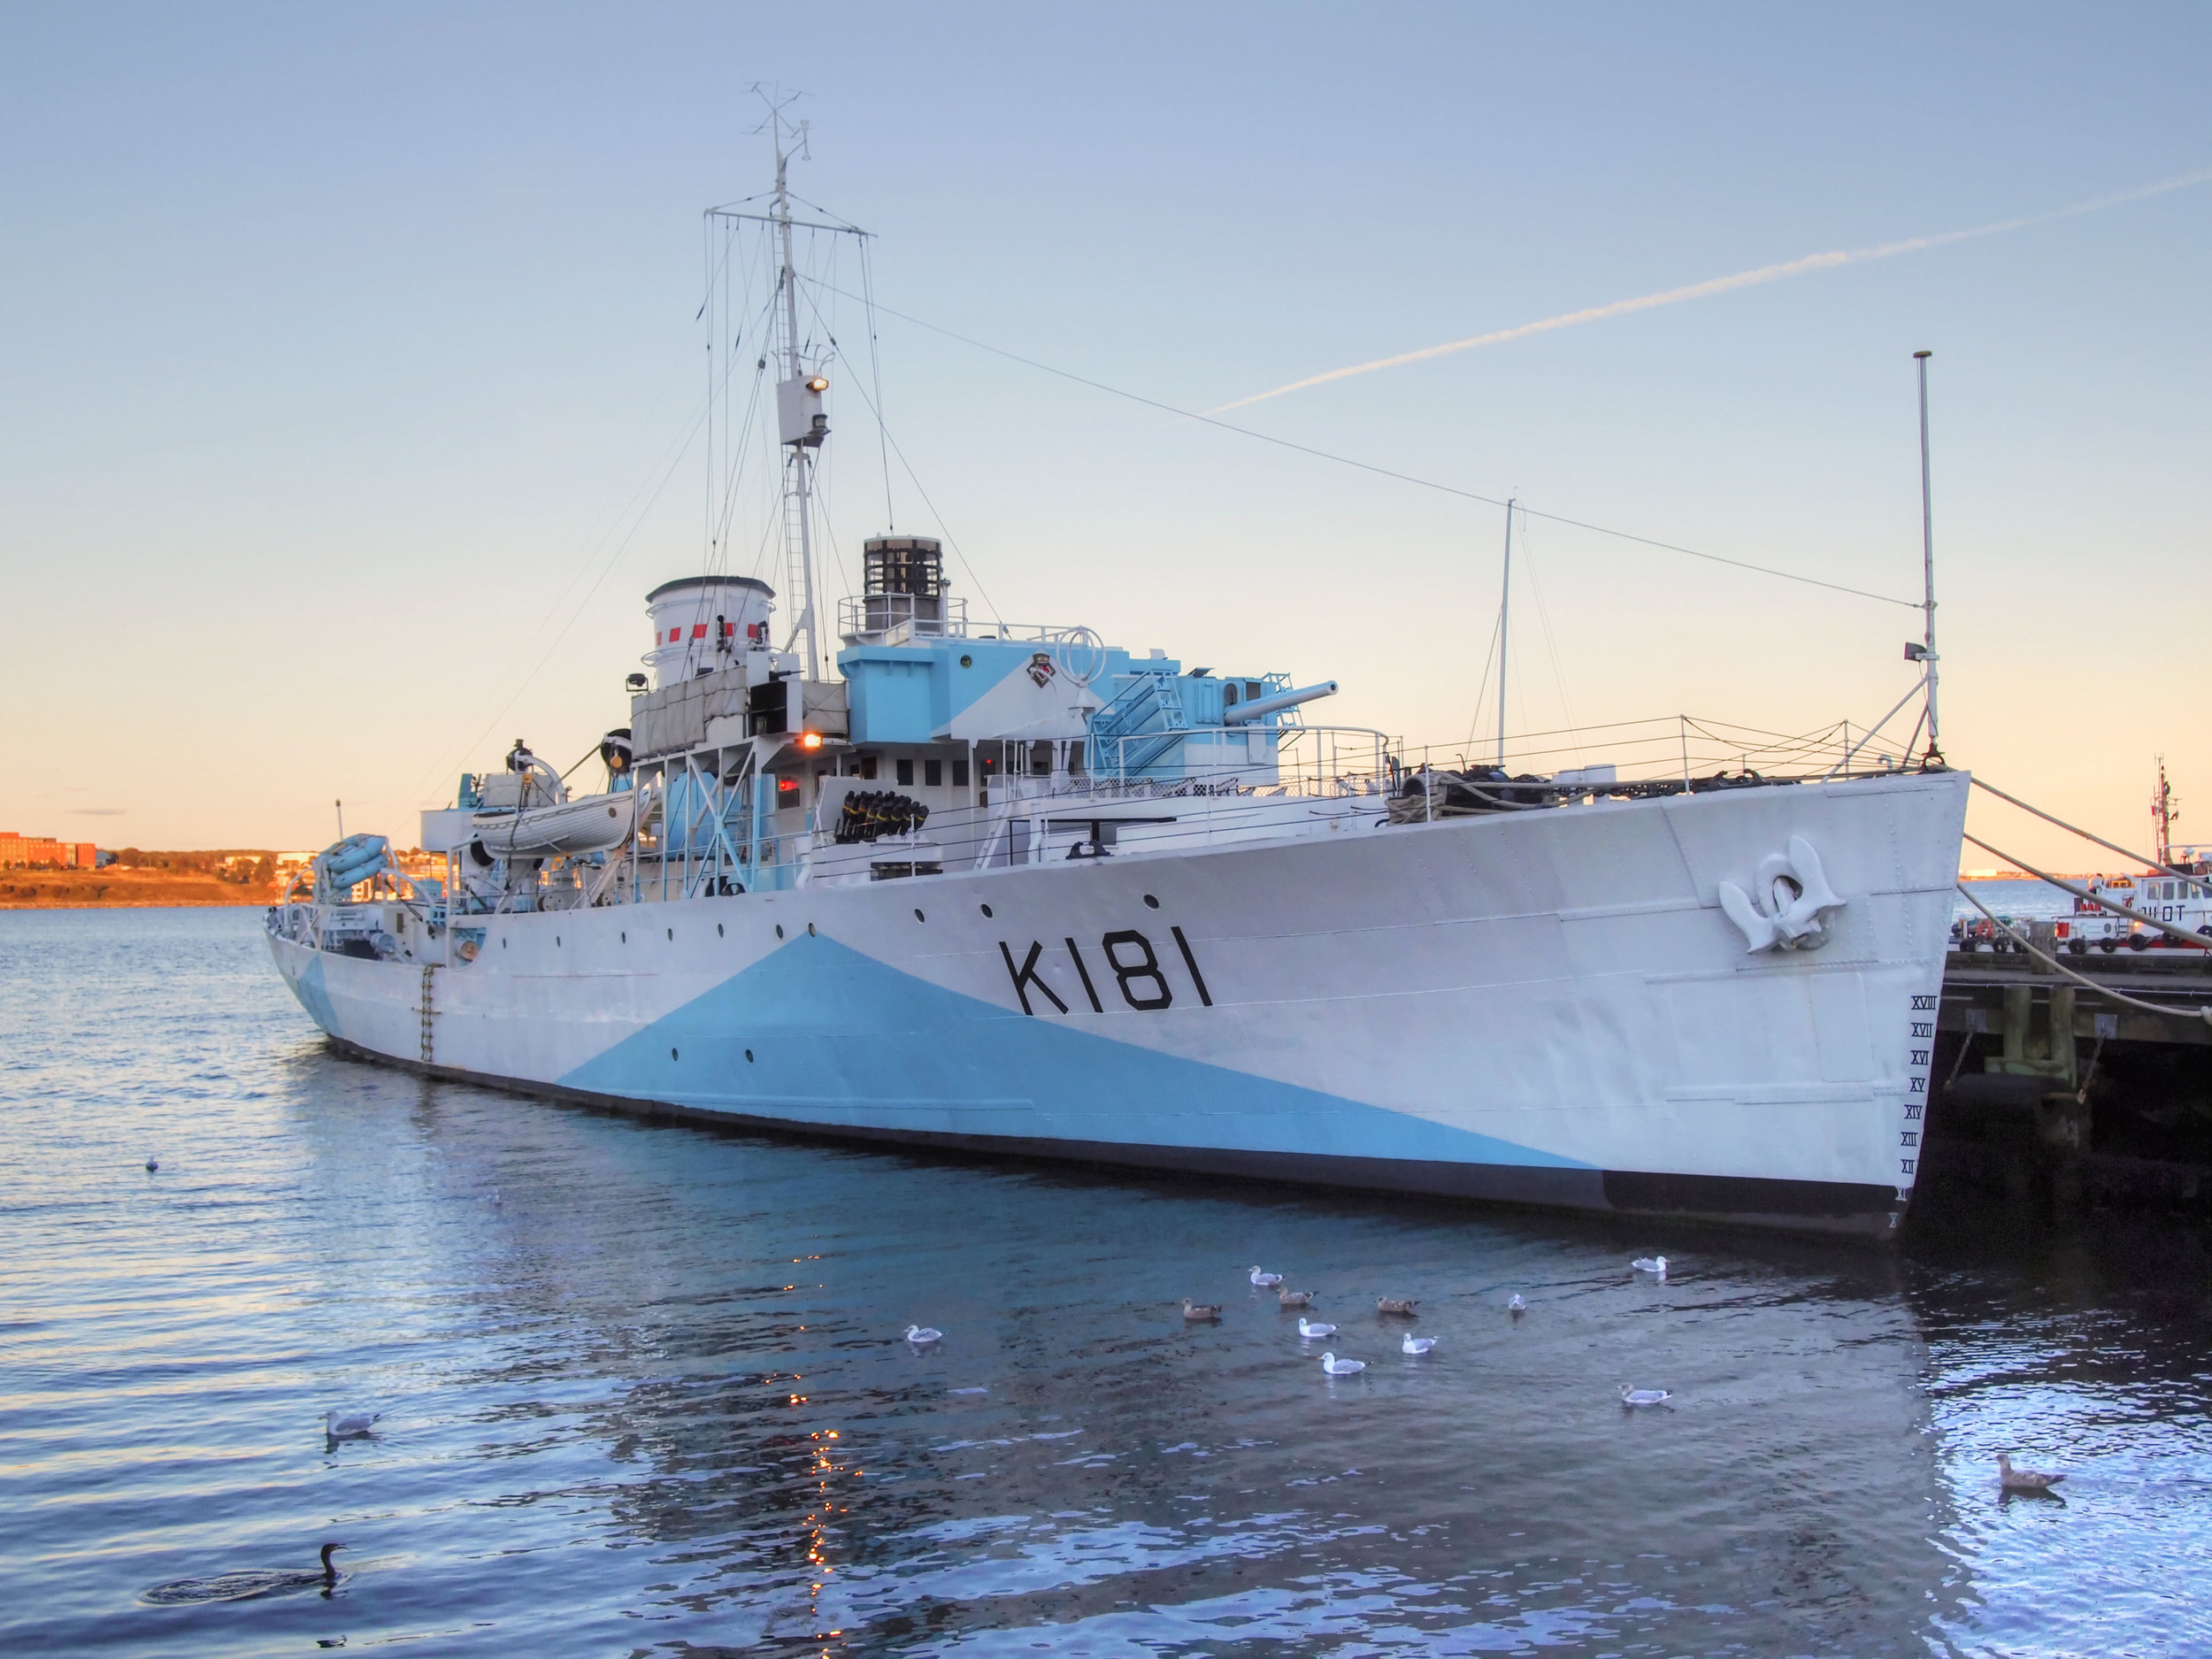 HMCS  Sackville , the last surviving Flower-class corvette and  now serving as a museum ship in Halifax, Nova Scotia, is in dire need of urgent repairs or she will be lost forever. (andrew anderson)